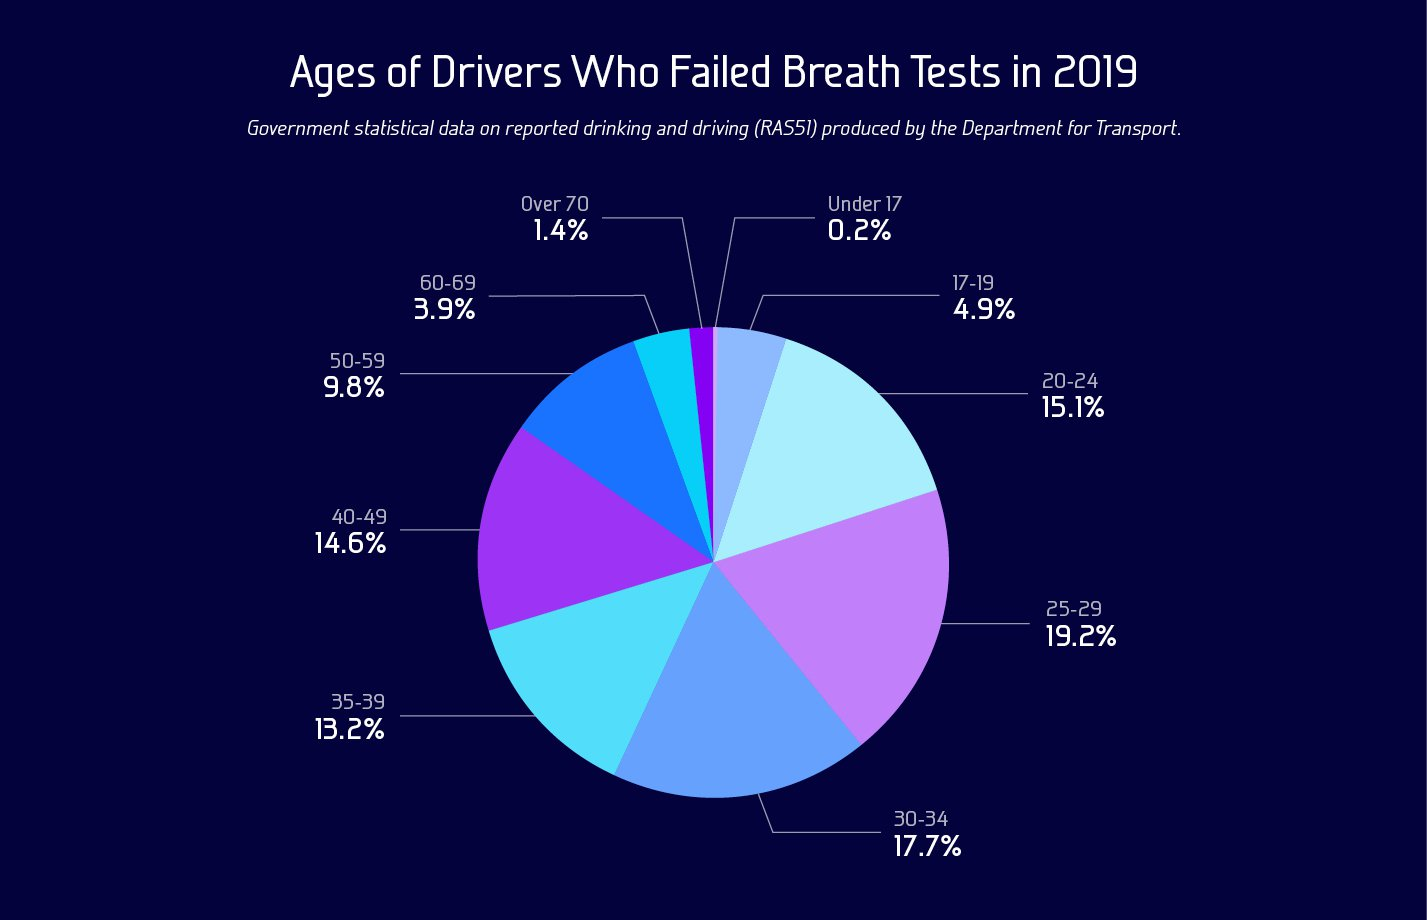 Pie Chart Showing Age of Drivers Who Failed Breath Tests